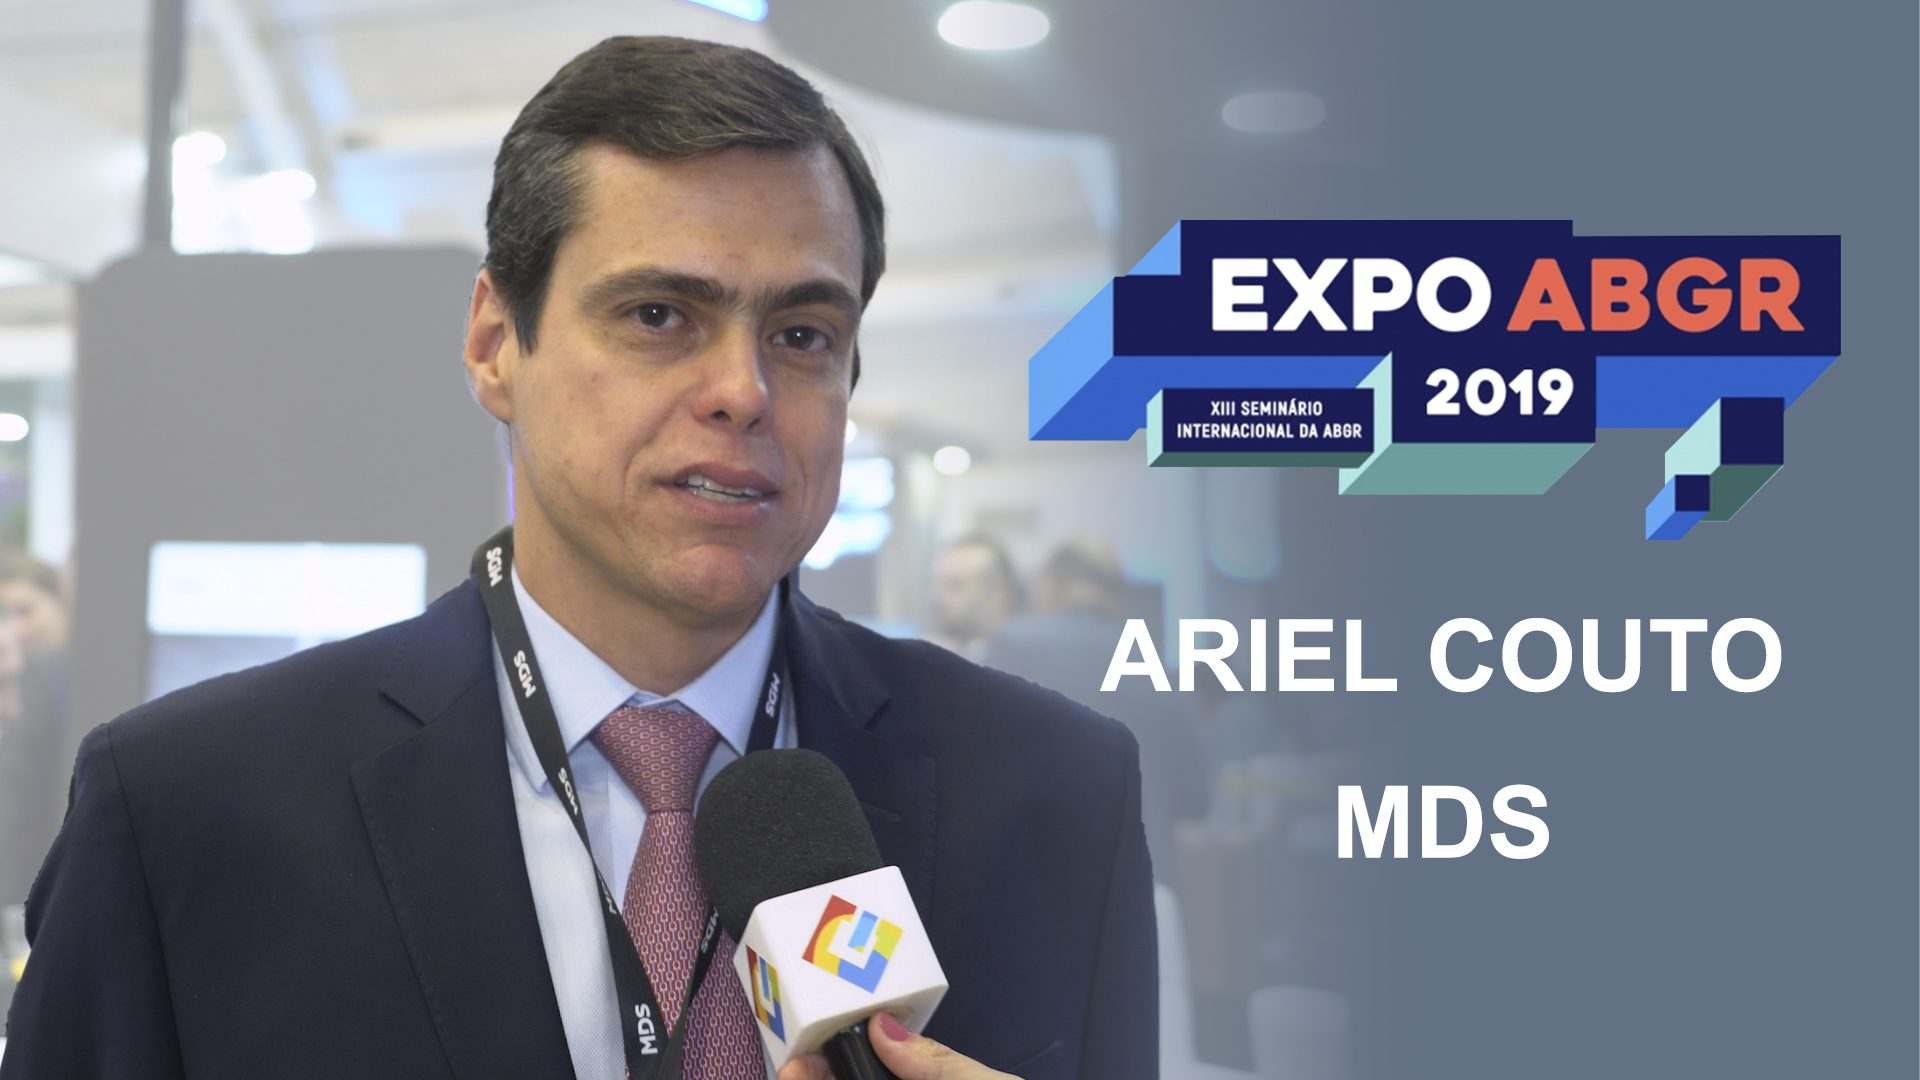 ABGR – Ariel Couto – MDS